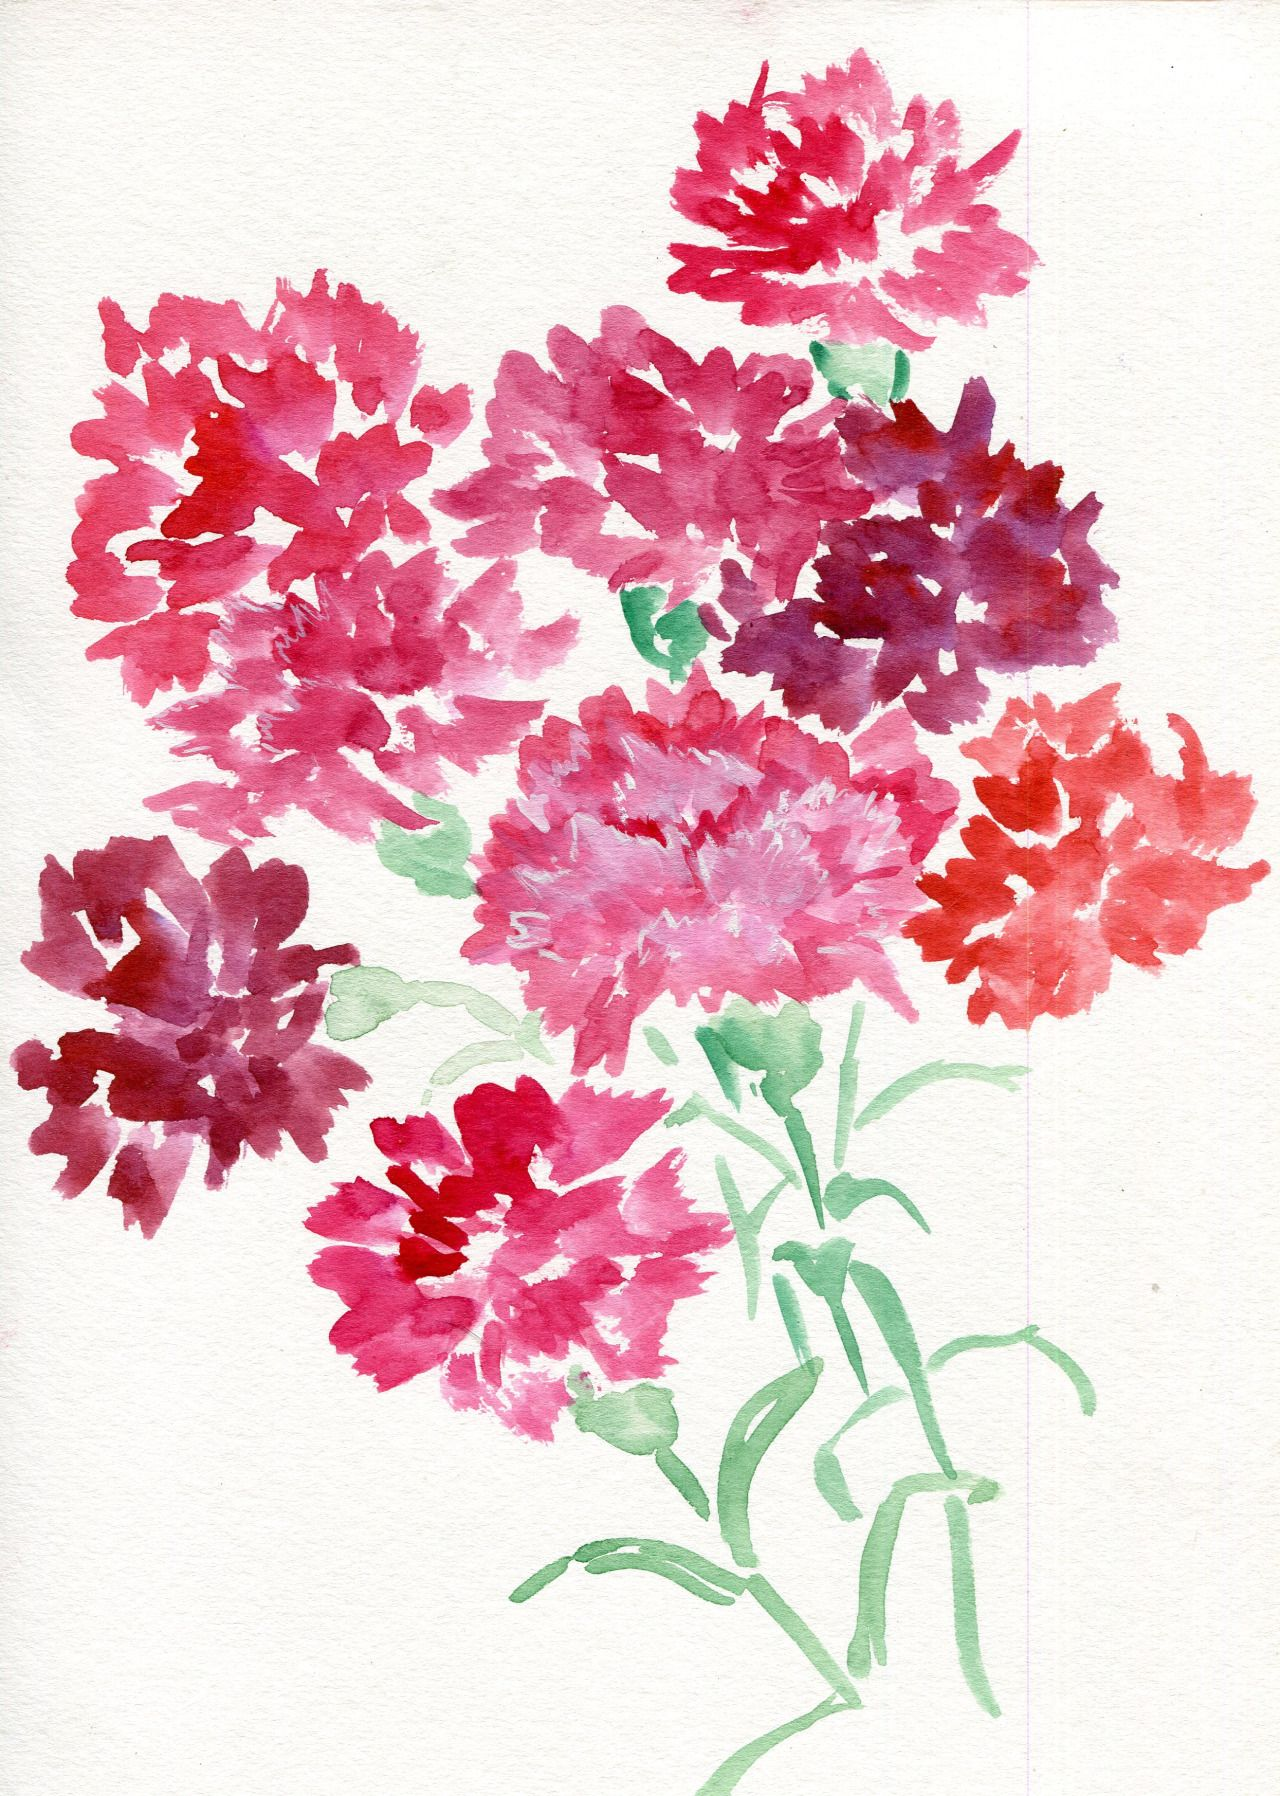 Jitterbug Watercolor On Paper 2016 9 X 12 Red Carnations On Etsy Art Abstract Flowers Beautiful Art